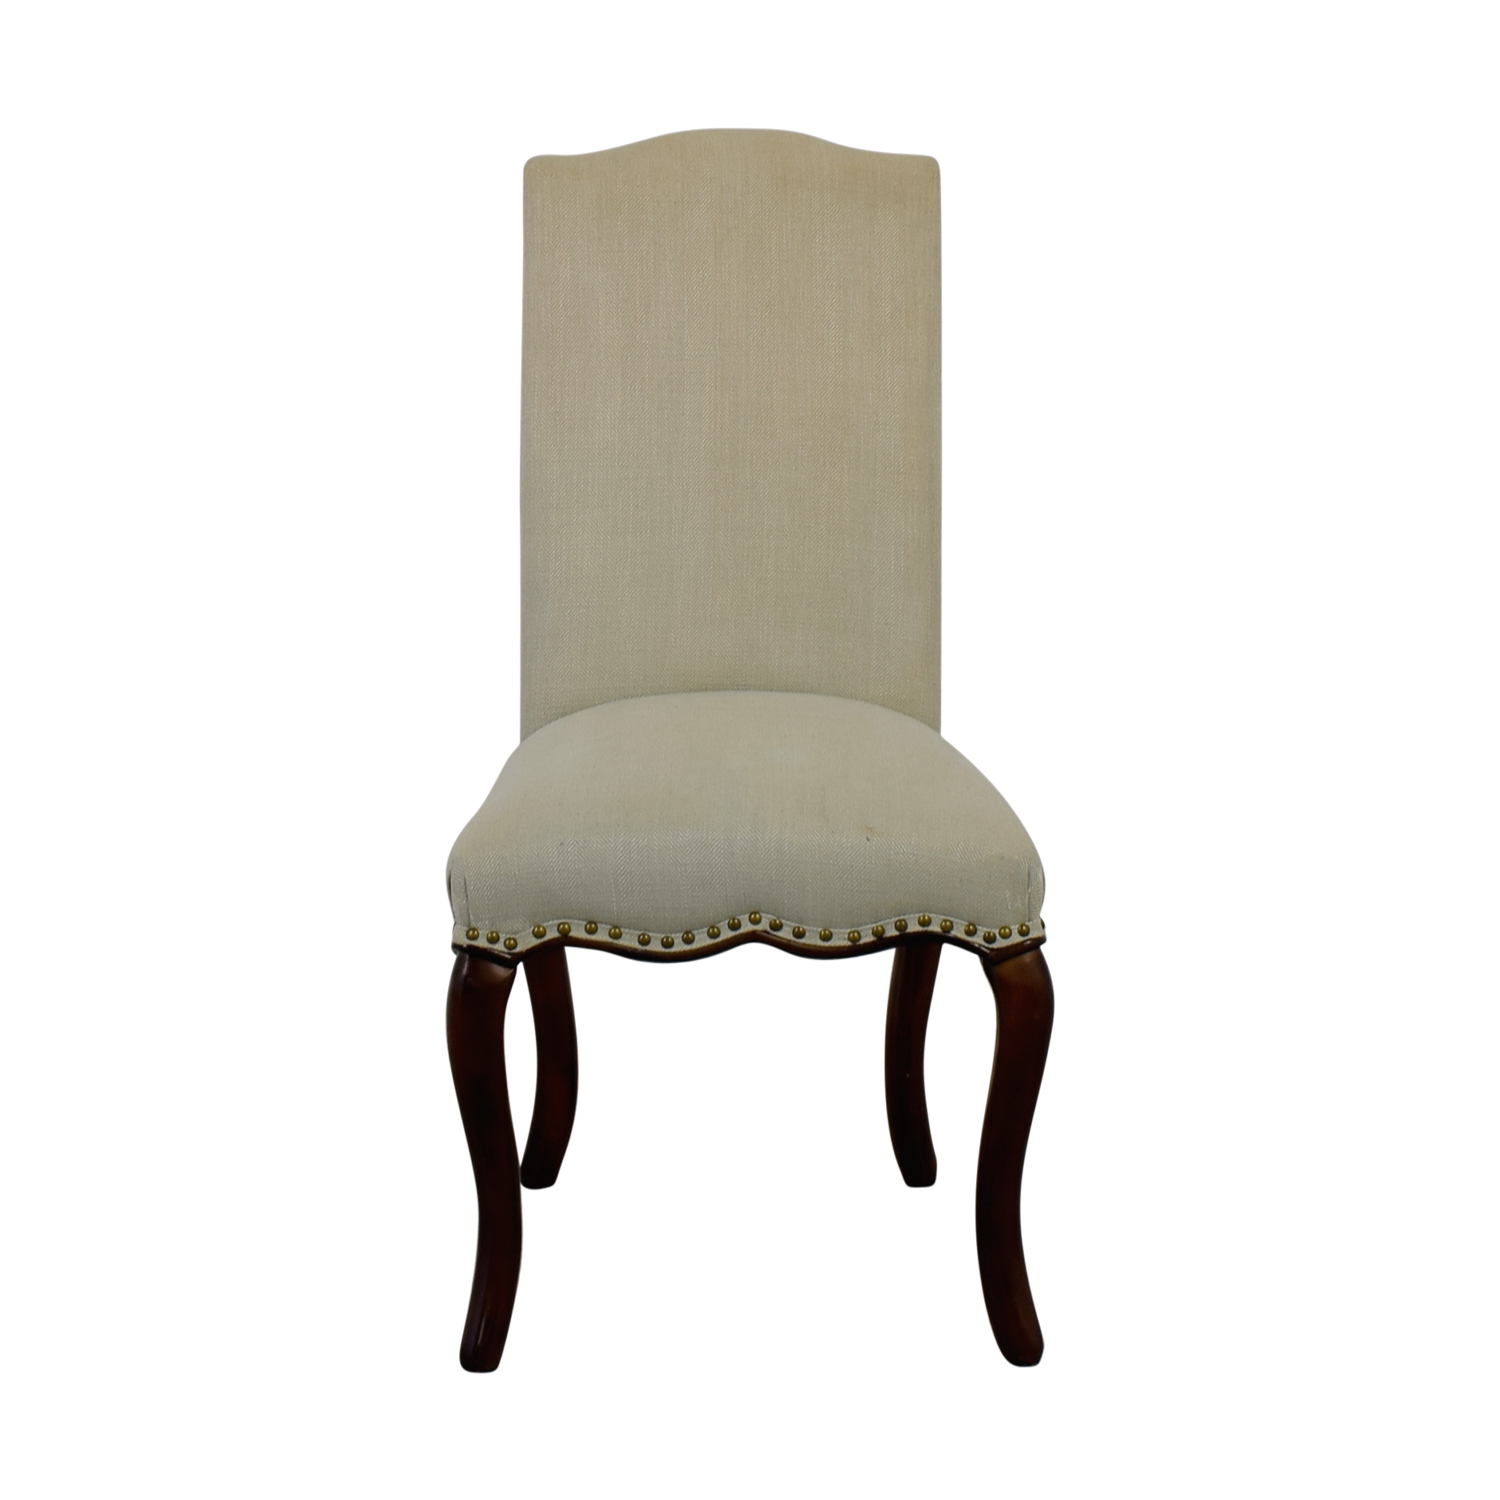 Pier 1 Pier 1 Pebble Pool Dining Chair with Espresso Wood nj